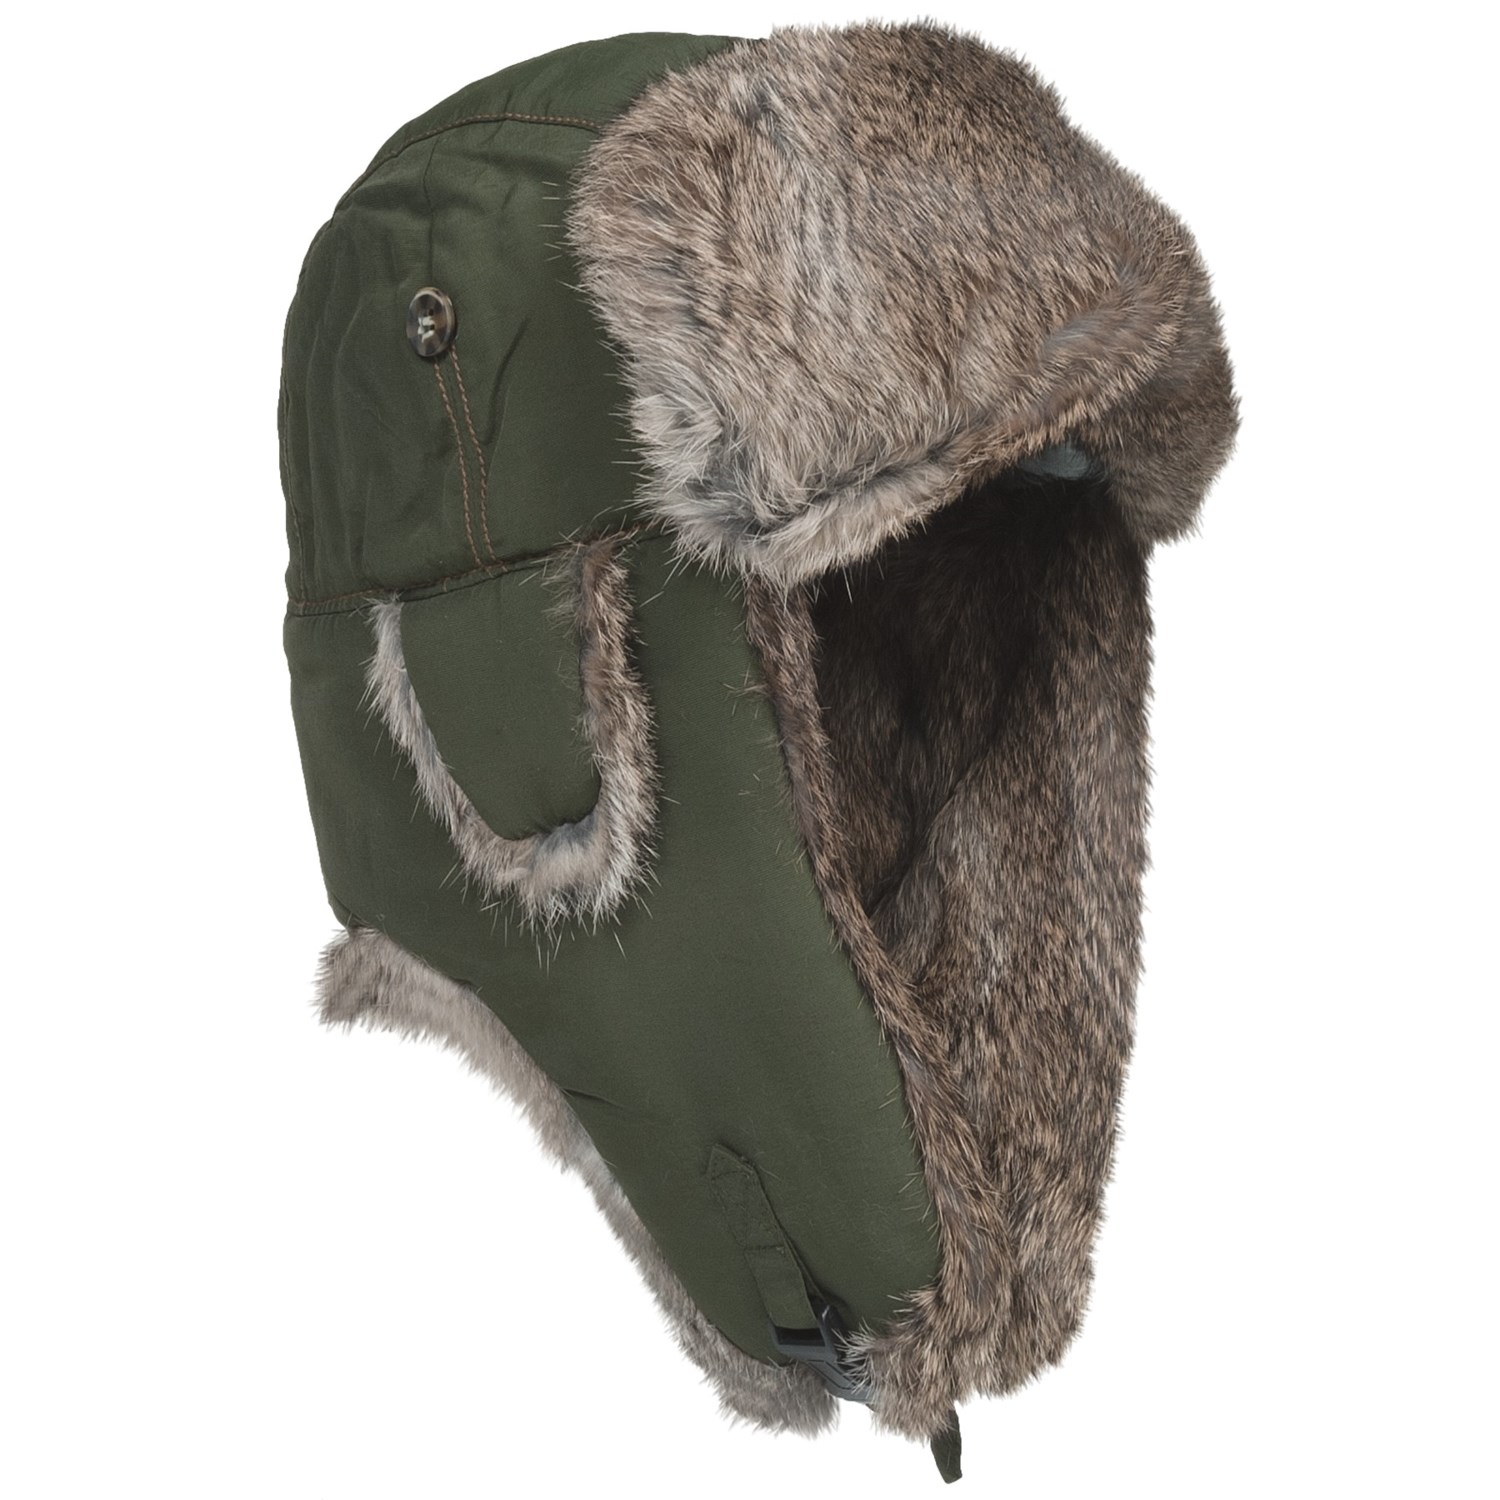 3465f6b9 Fur bomber hat : Apple pies restaurant